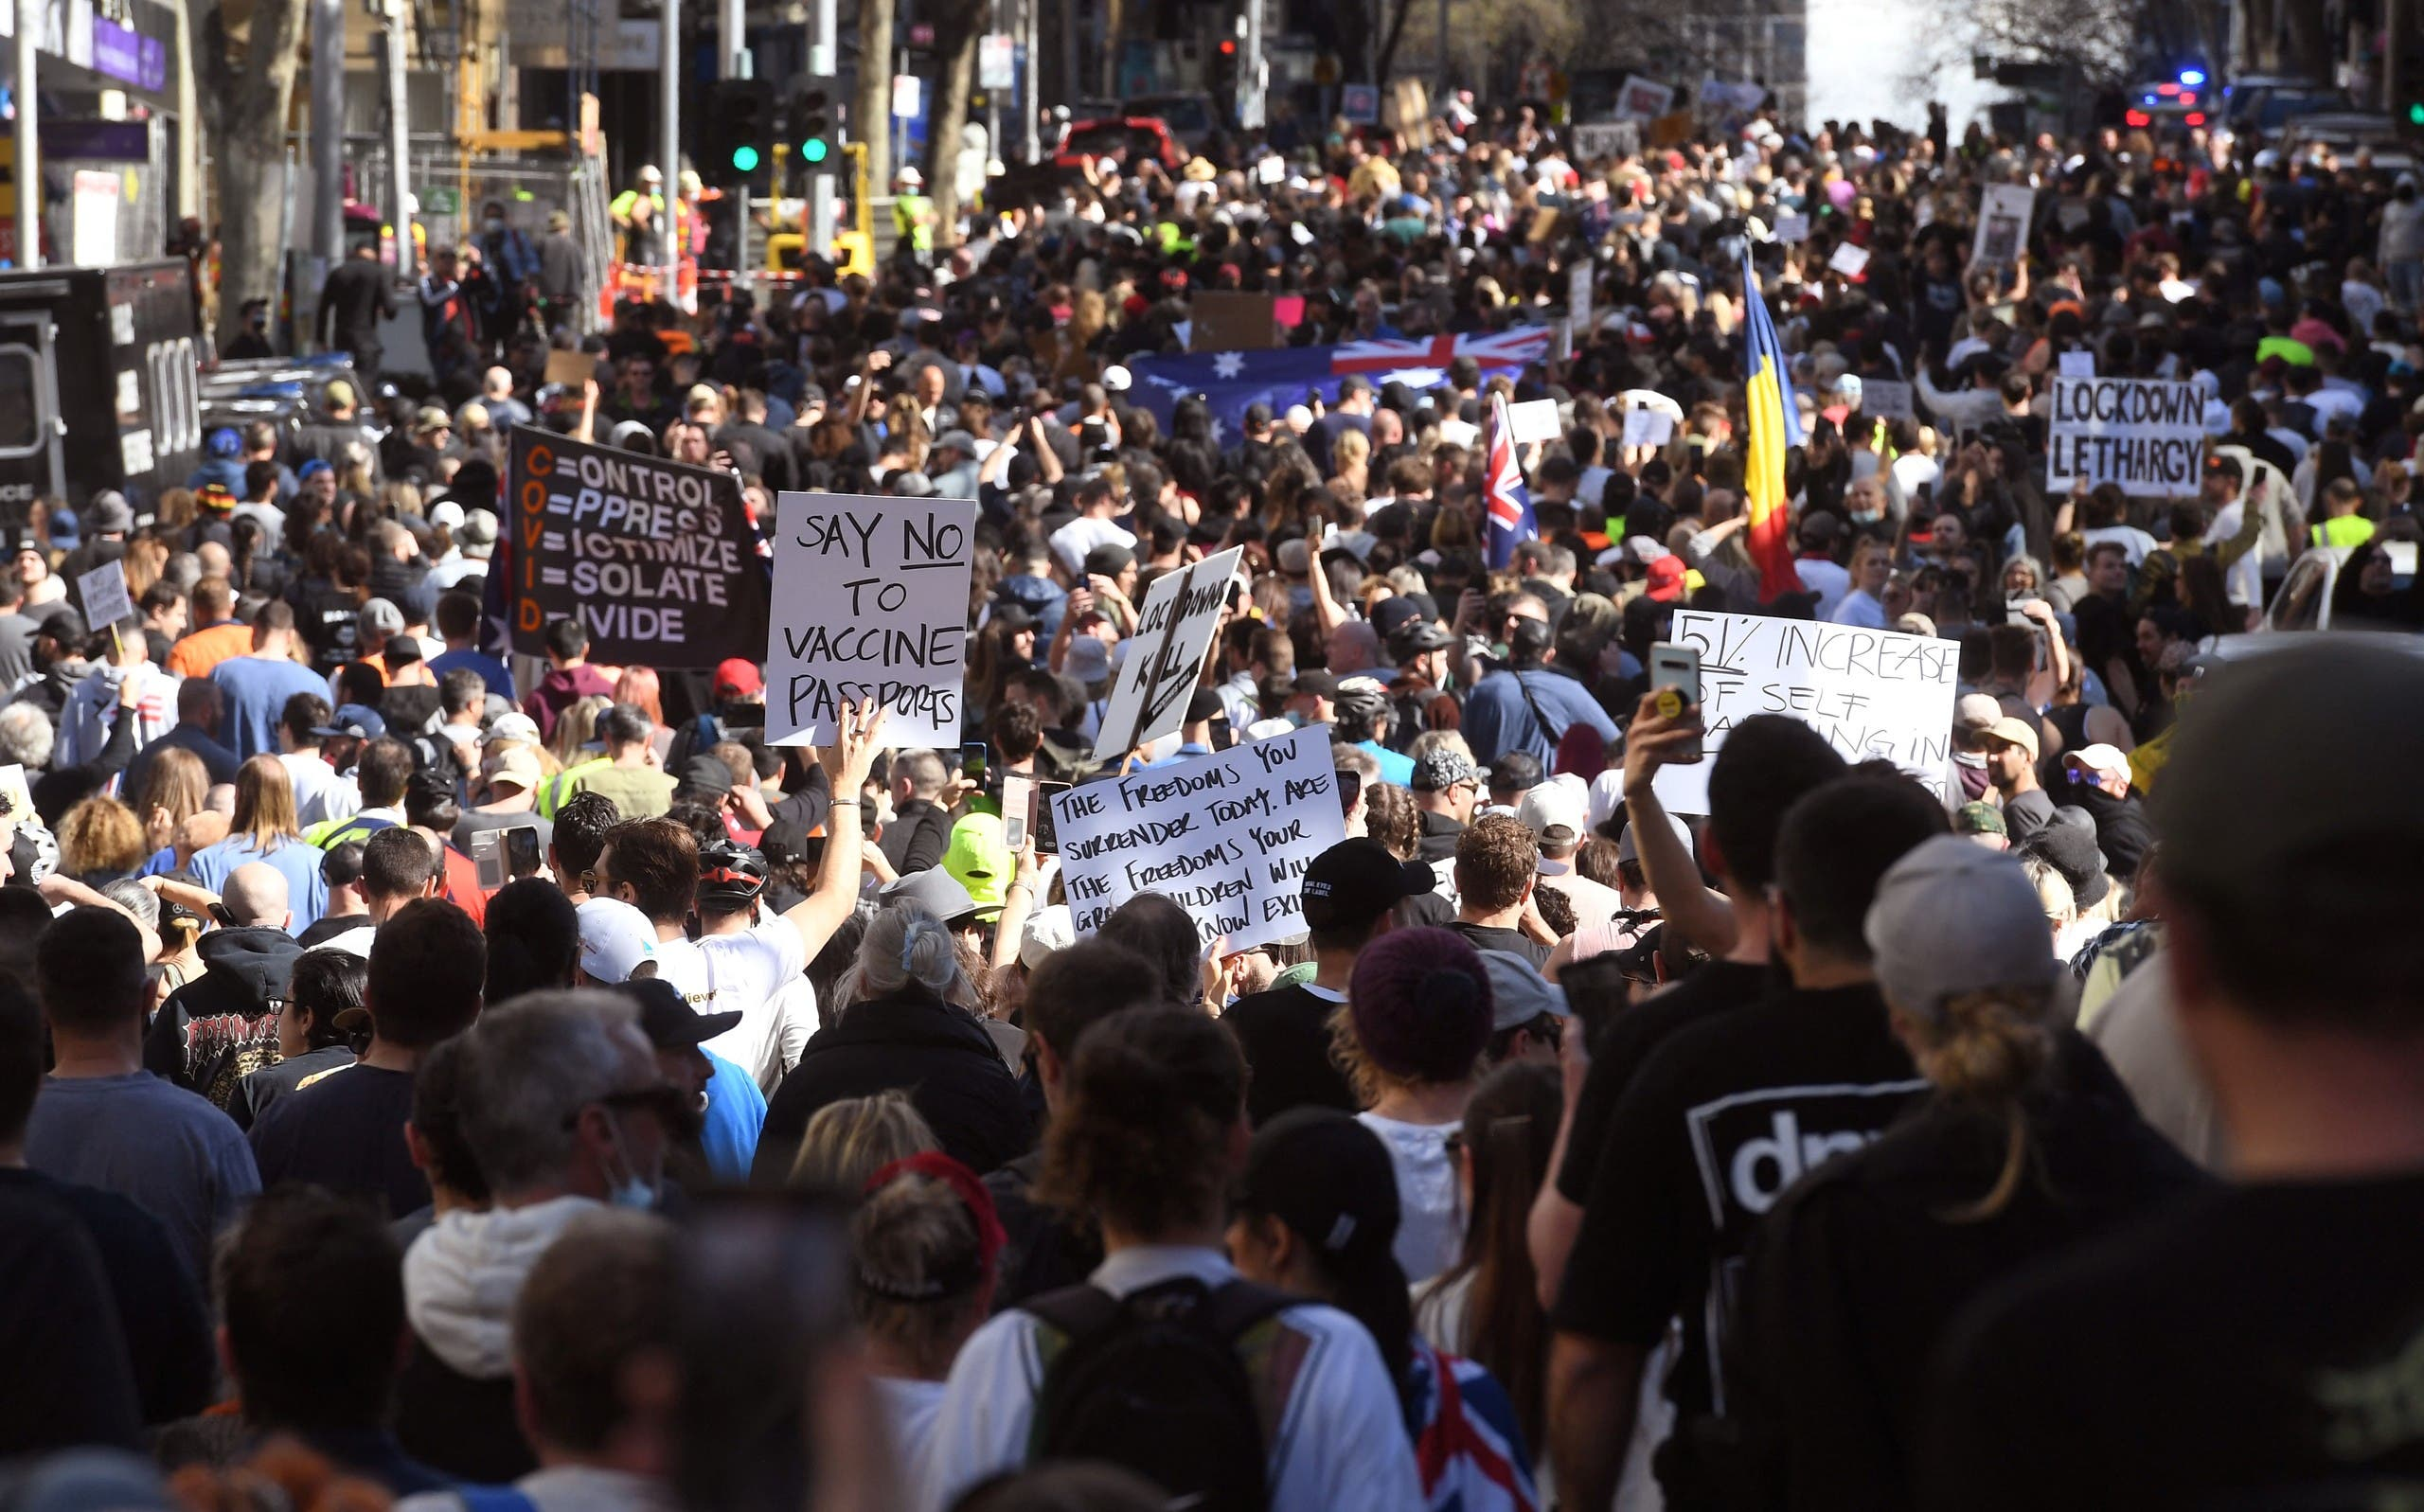 Protesters march through the streets during an anti-lockdown rally in Melbourne on August 21, 2021 as the city experiences it's sixth lockdown while it battle an outbreak of the Delta variant of coronavirus. (AFP)